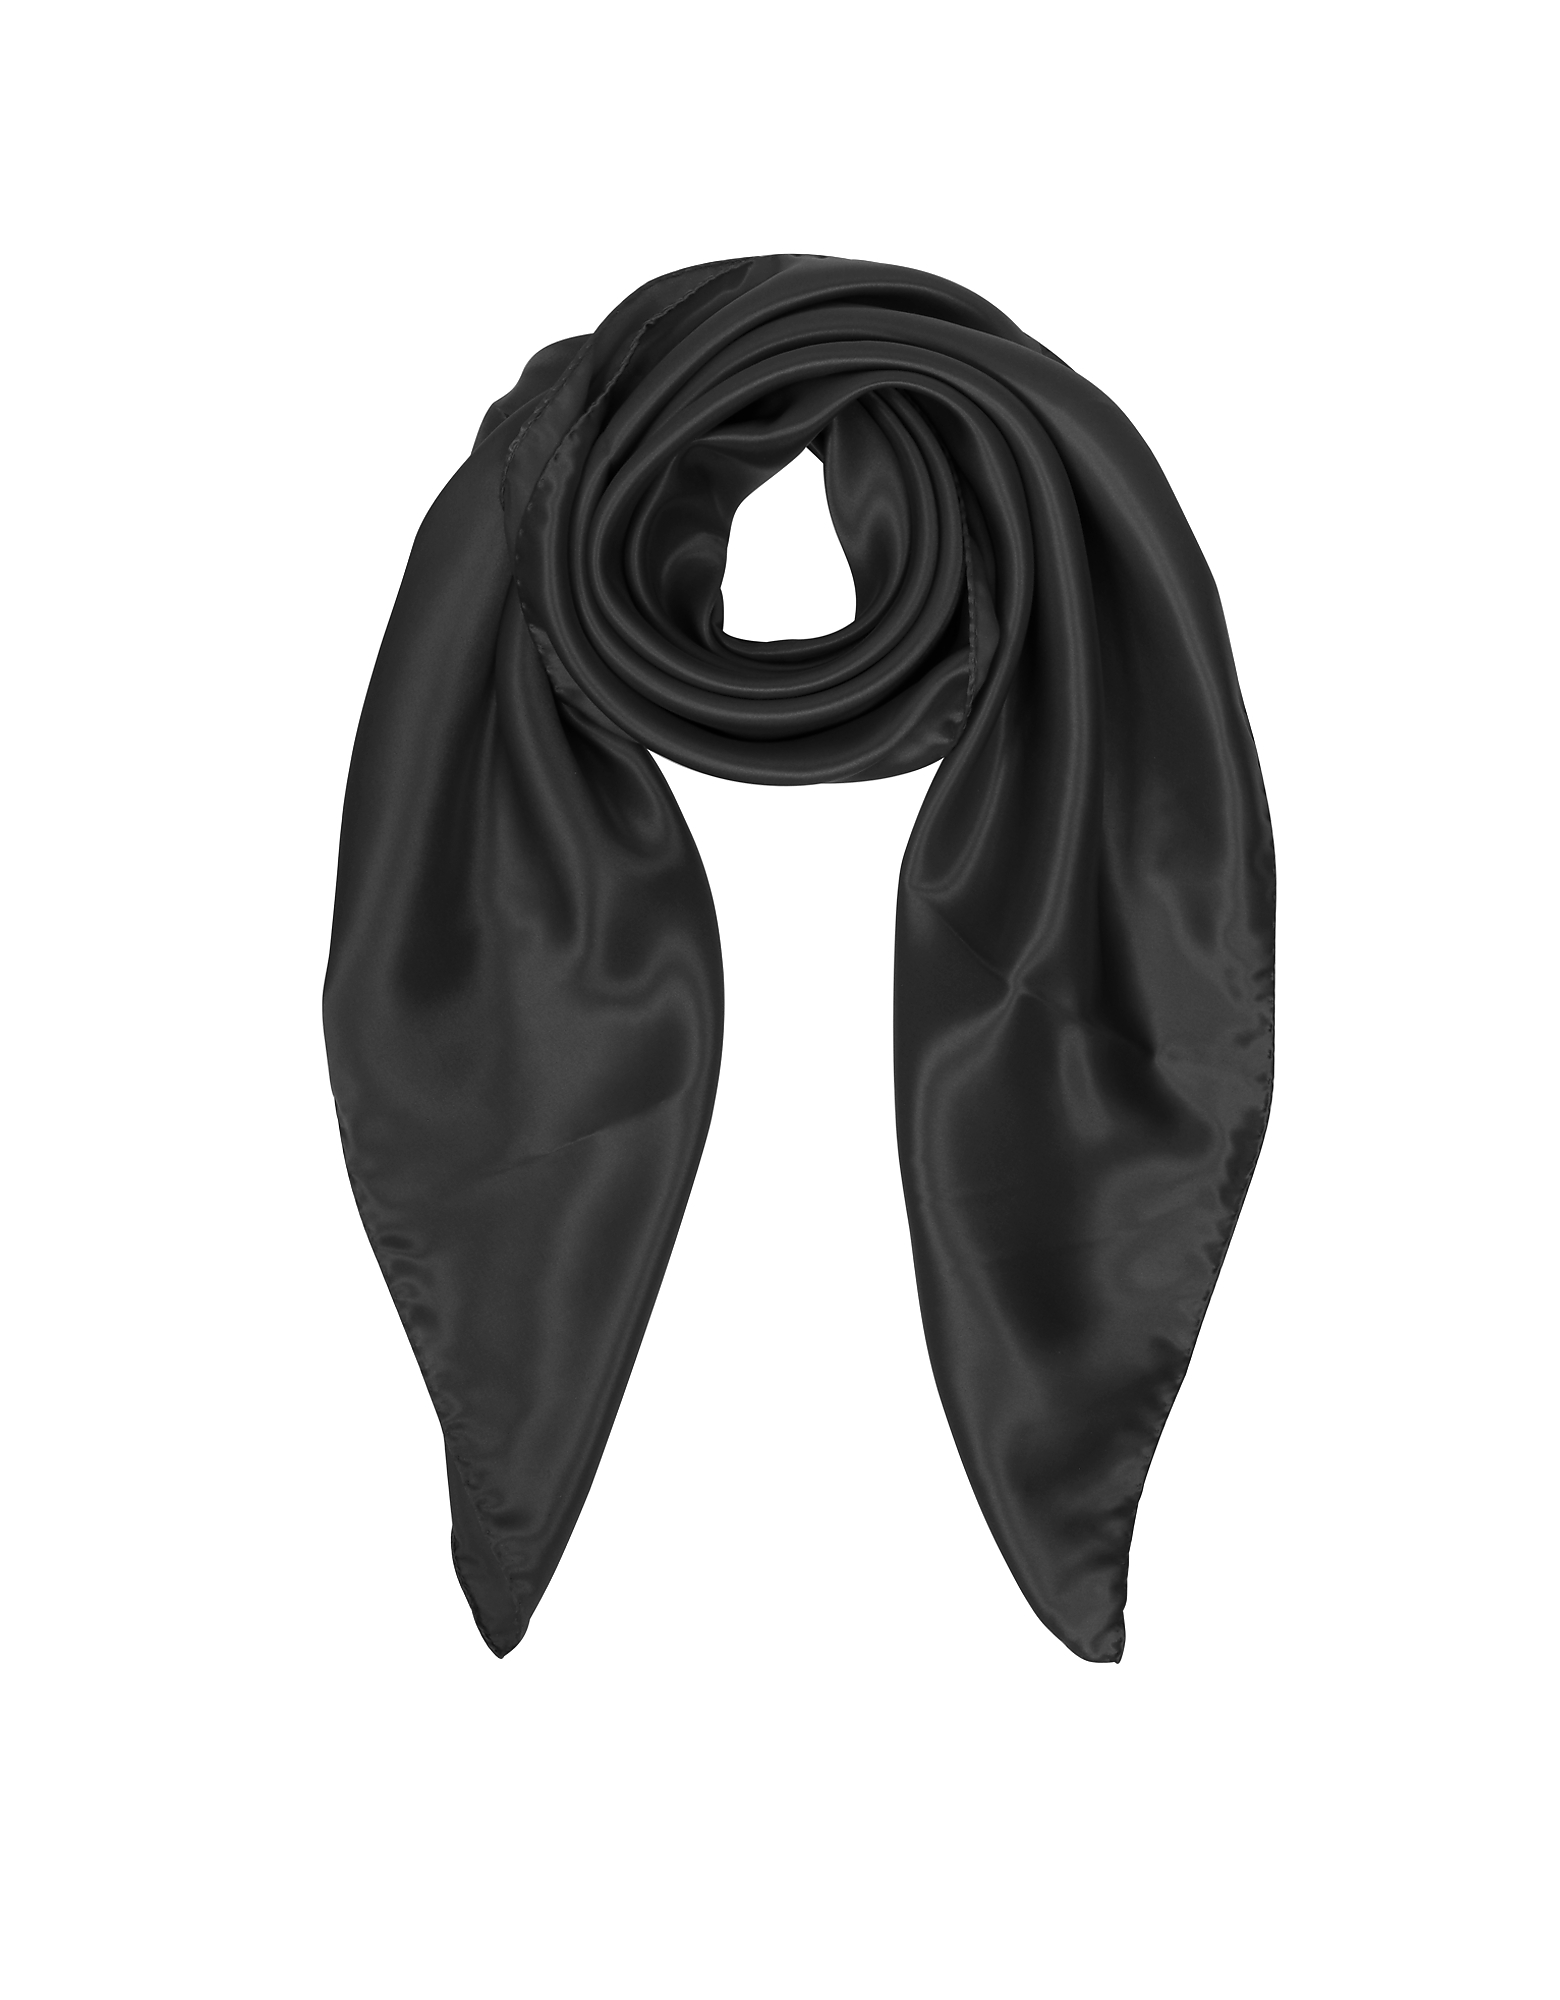 Forzieri Scarves, Solid Twill Silk Square Scarf